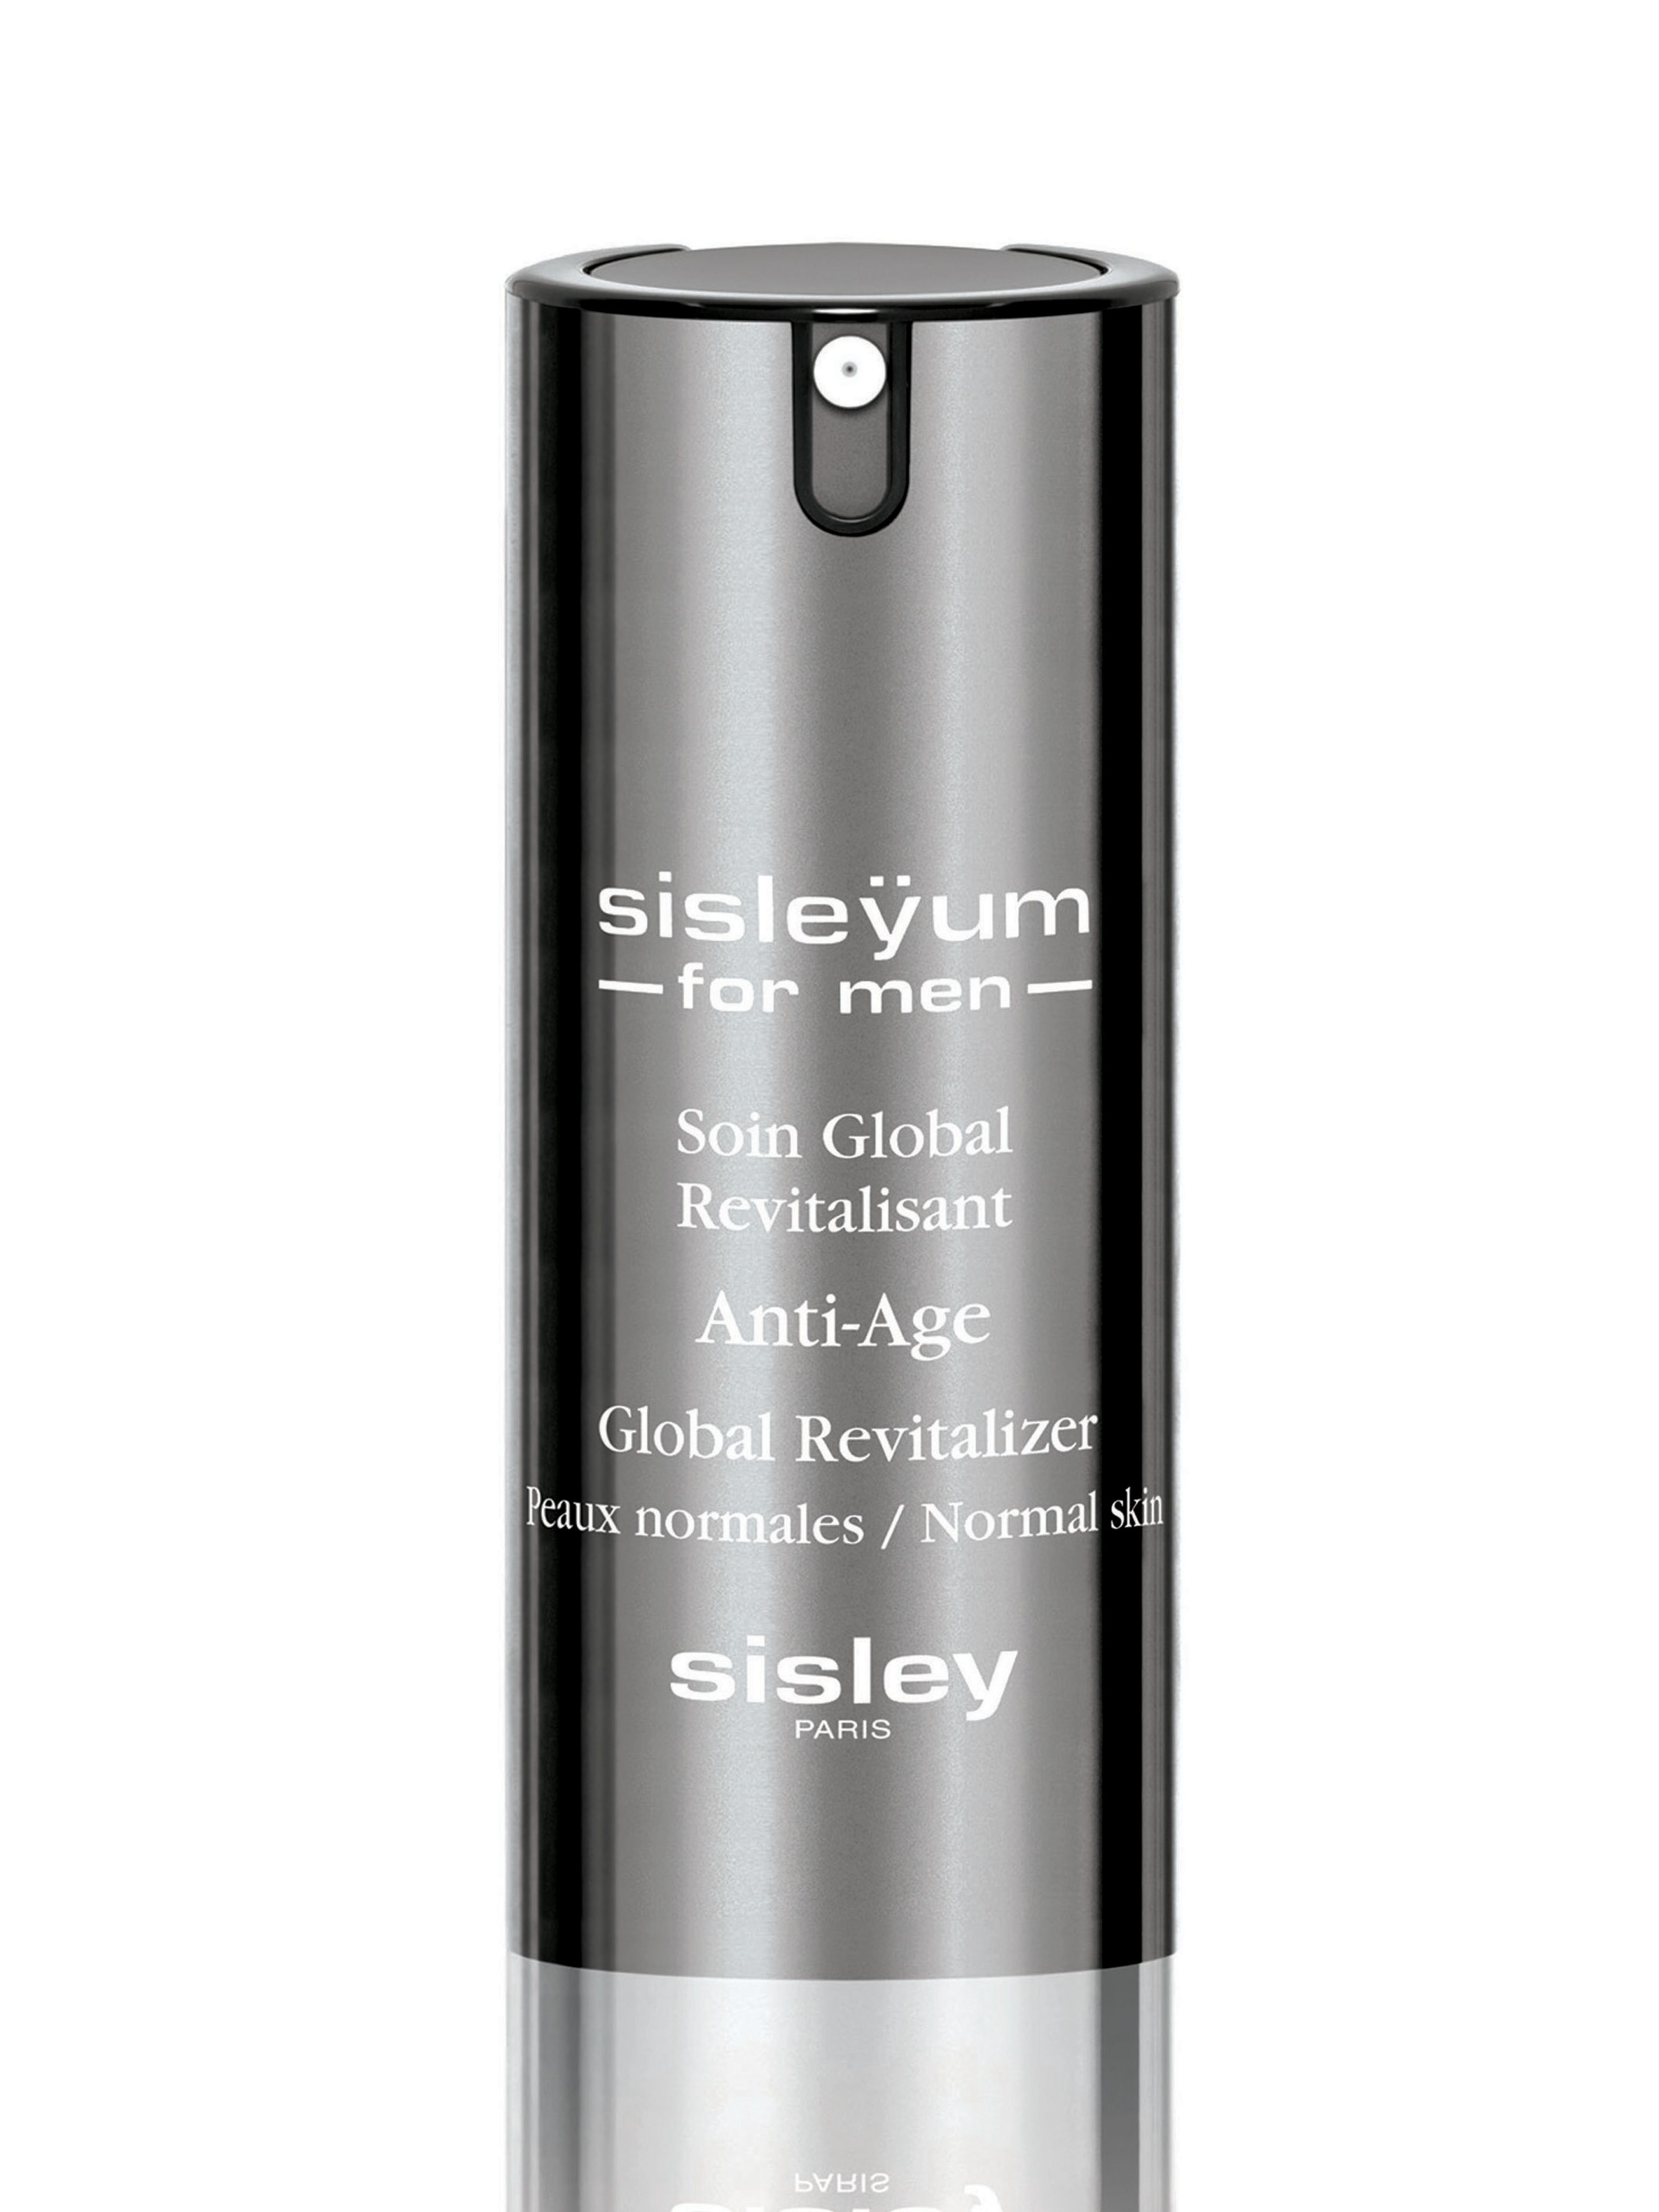 Sisleyum for Men Anti Aging for Normal Skin